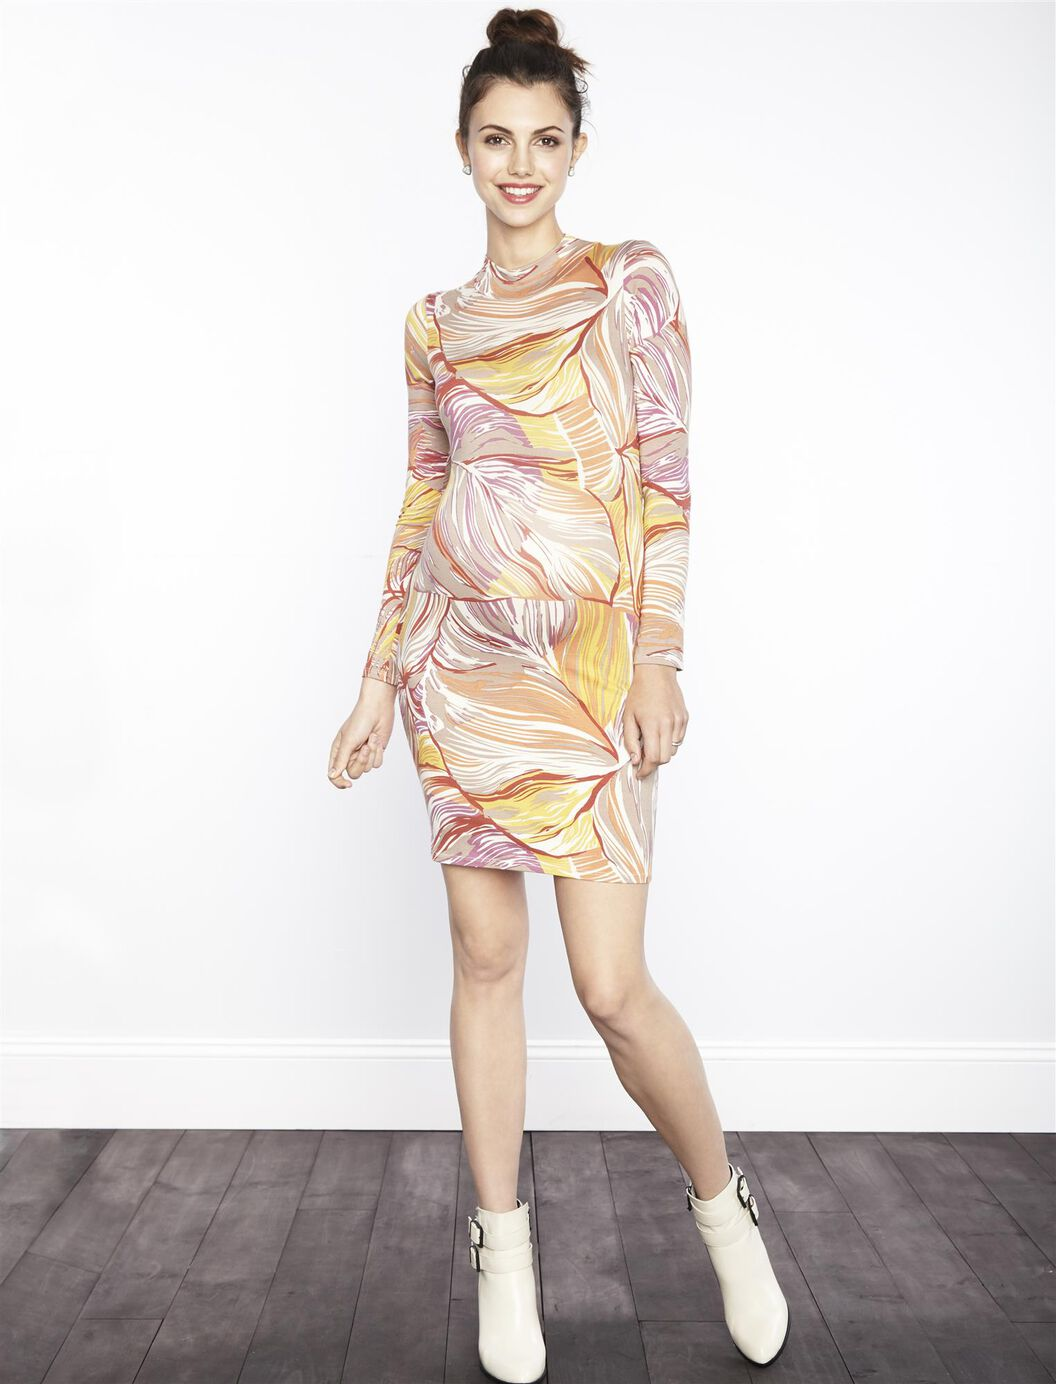 Rachel pally maternity dress a pea in the pod maternity rachel pally maternity dress magnolia print ombrellifo Image collections